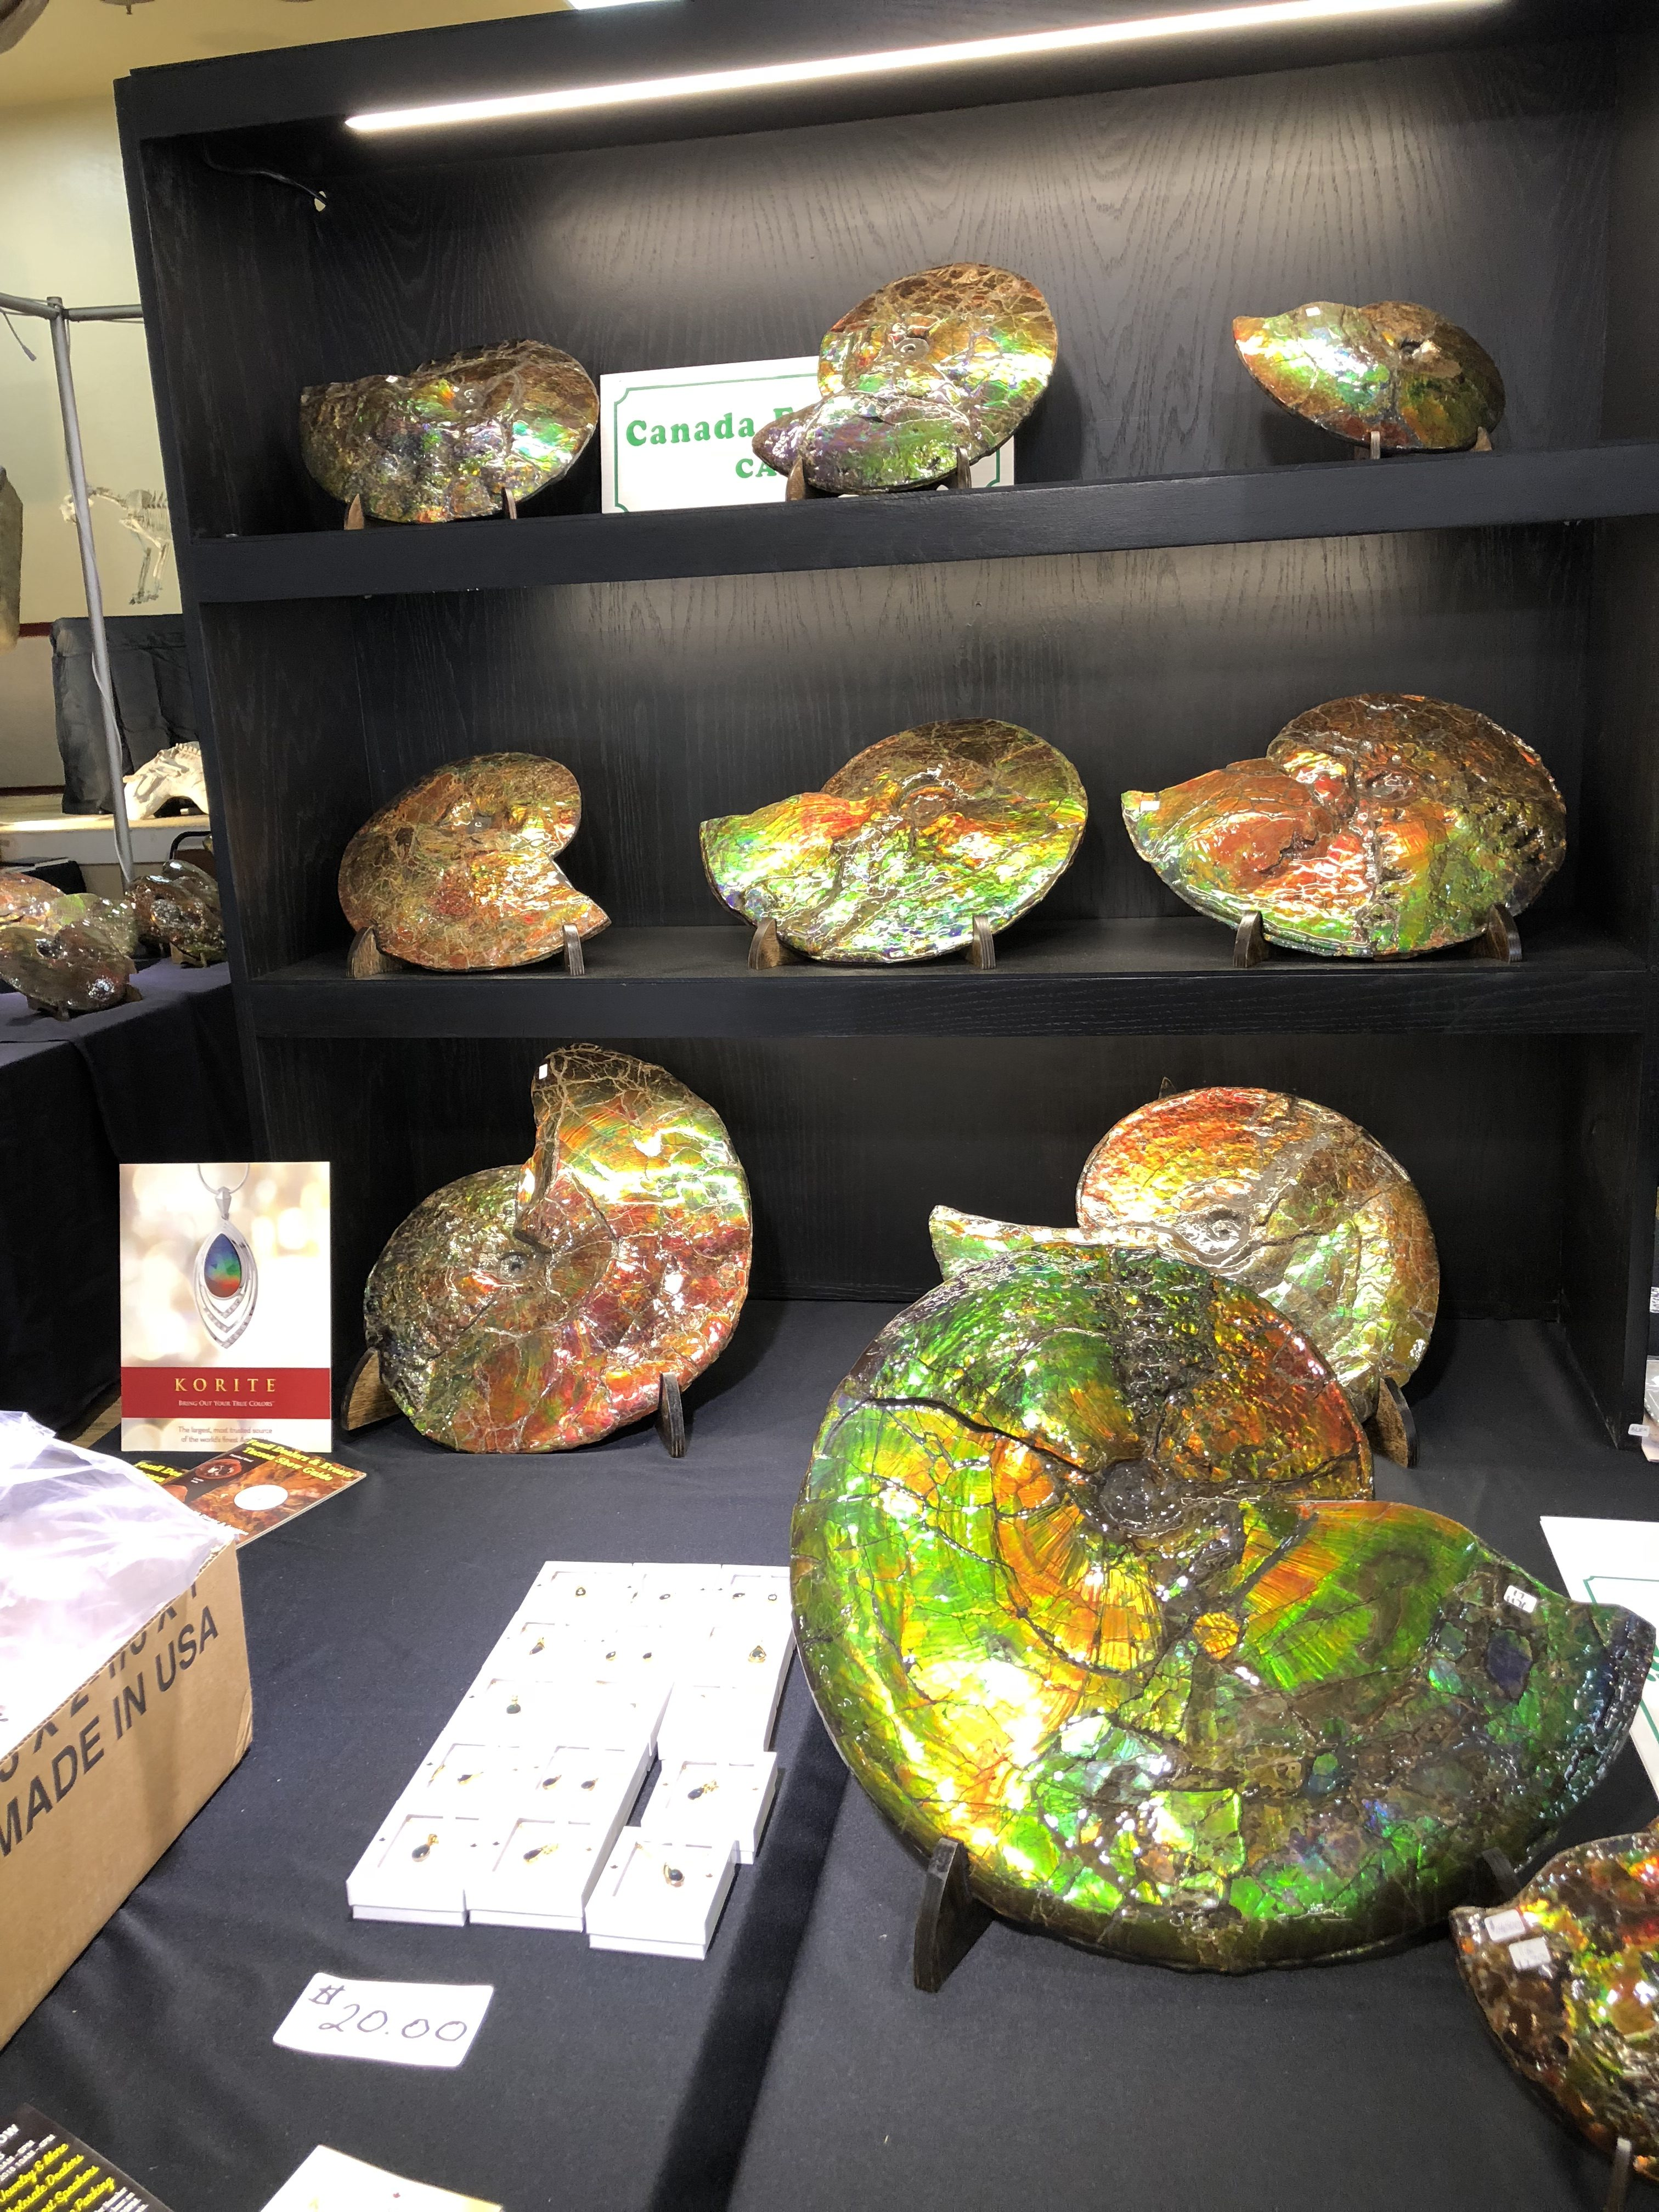 Incredible ammonite fossils